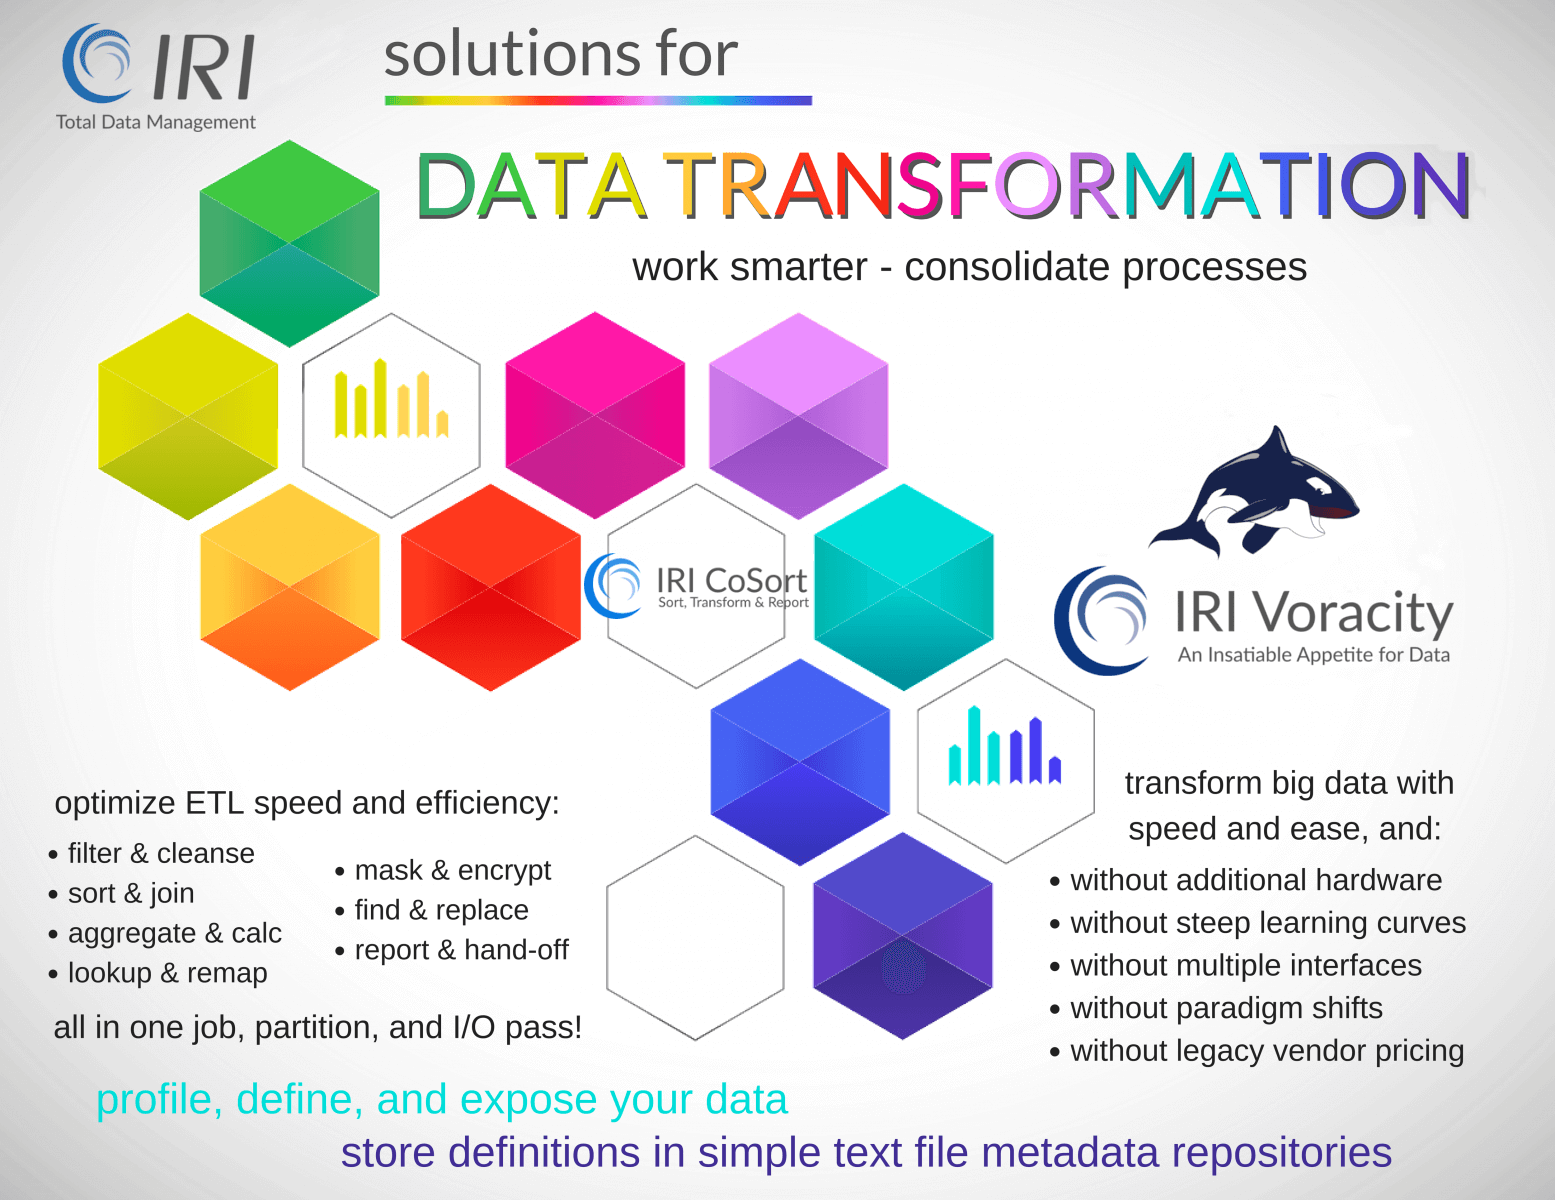 IRI solutions for data transformation problems to maximize the value of data